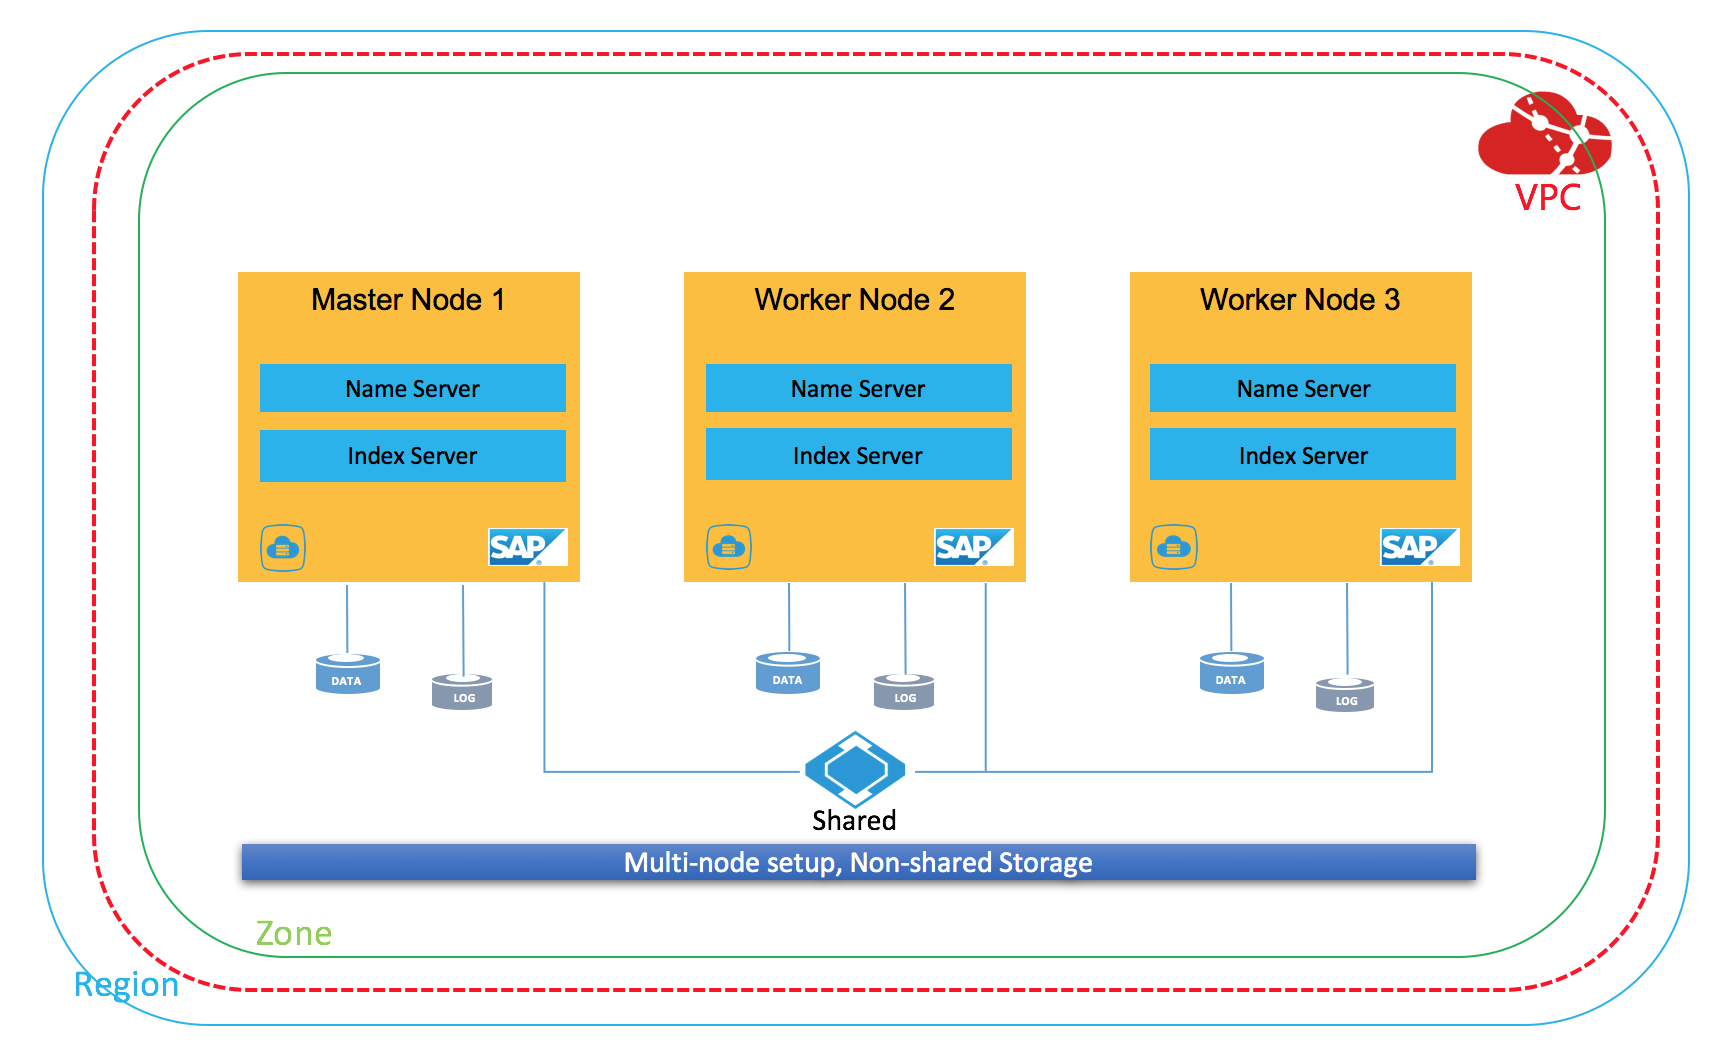 SAP HANA Scale-out Deployment Guide - Best Practices